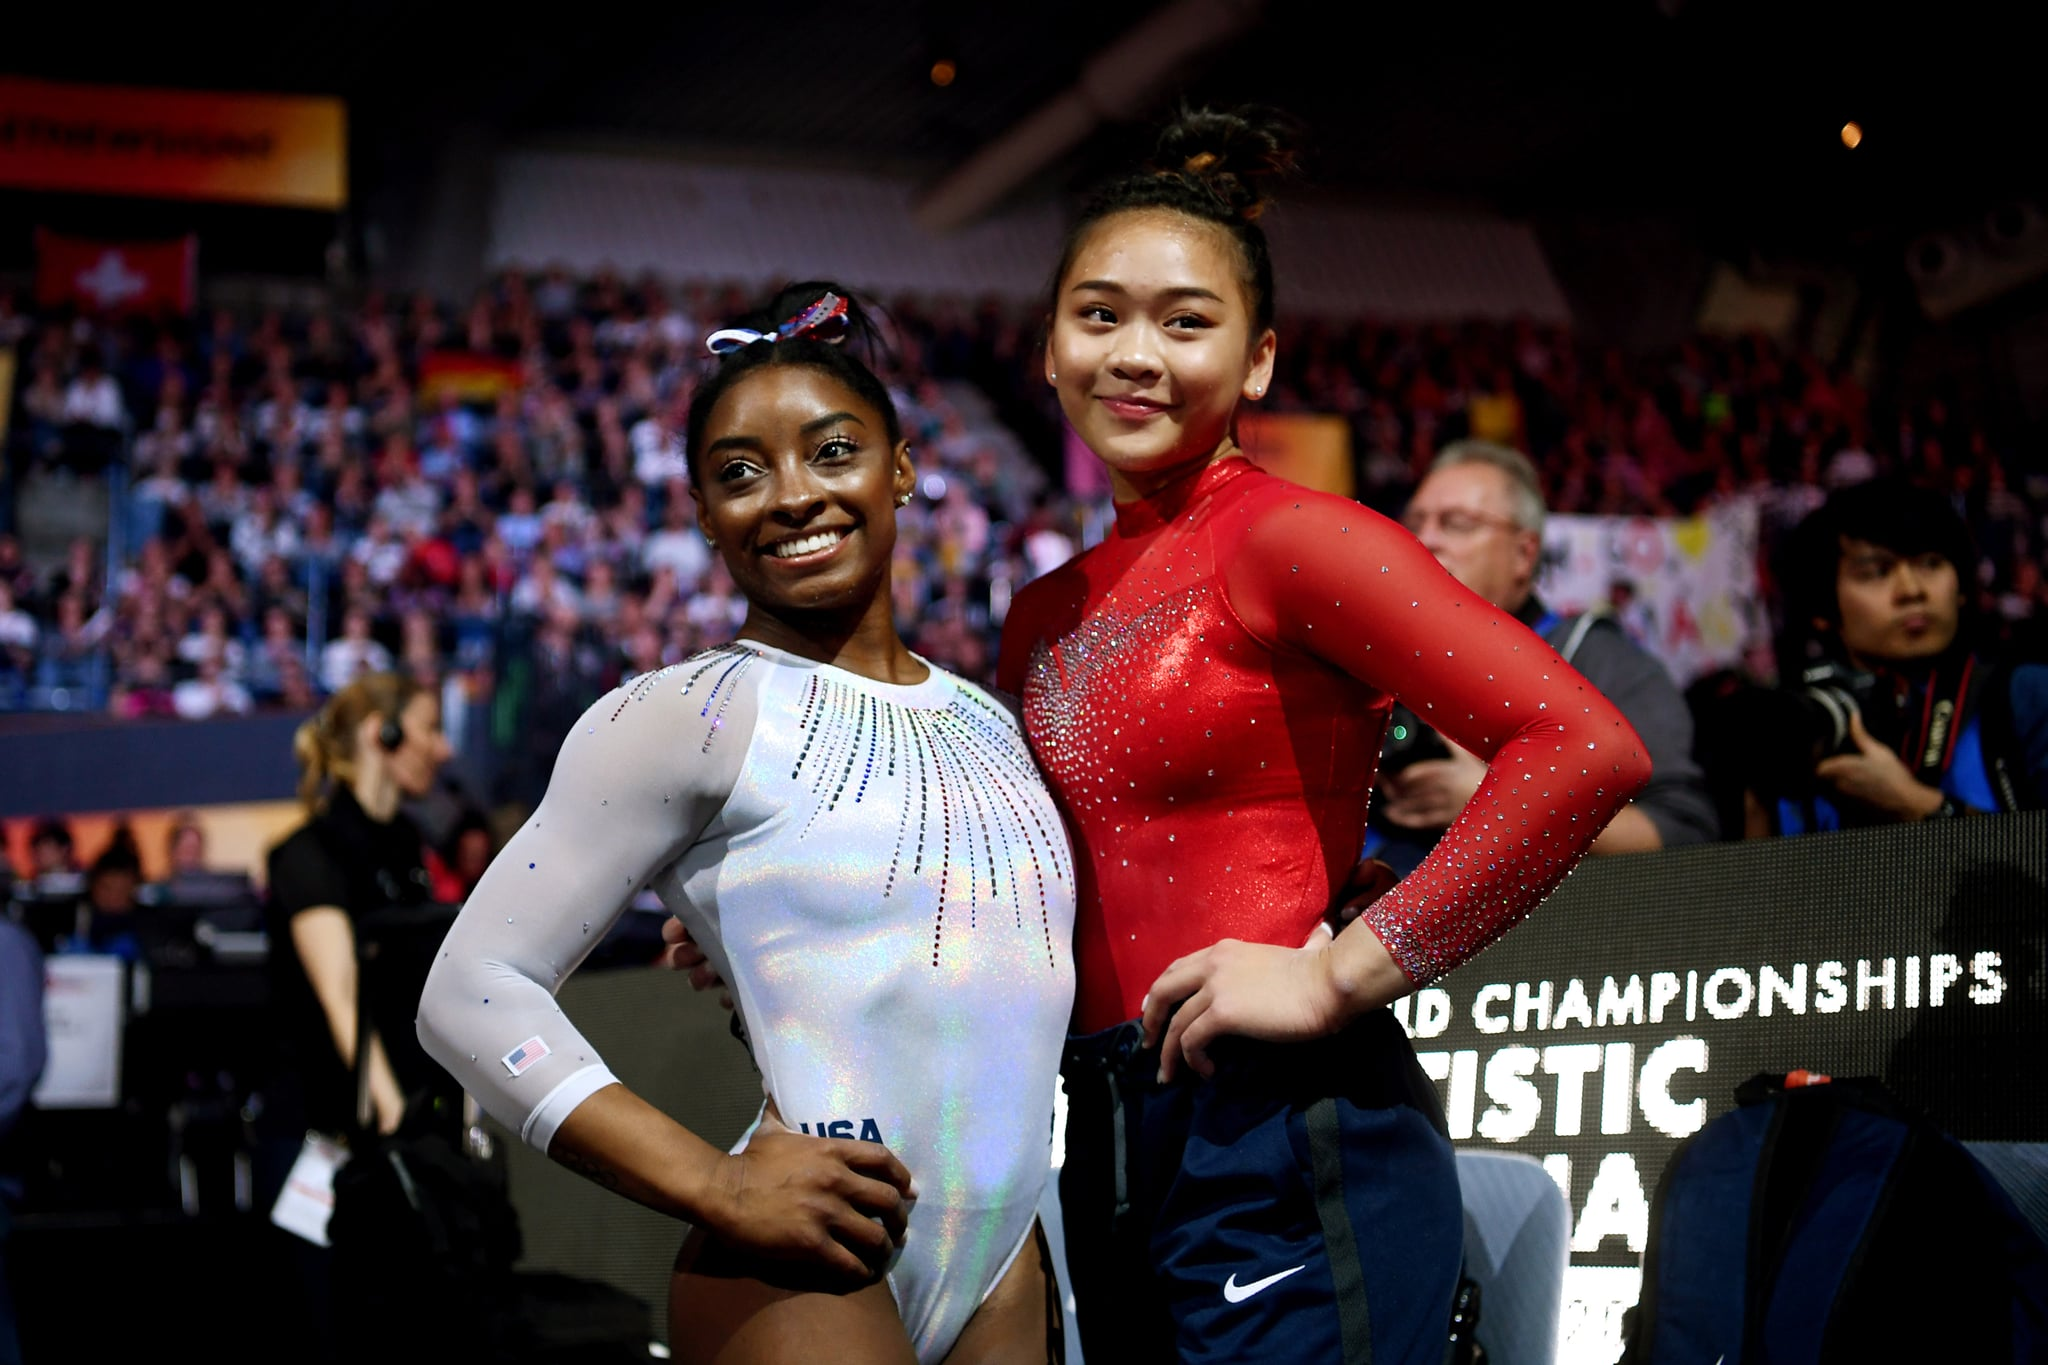 STUTTGART, GERMANY - OCTOBER 10:  Simone Biles and Sunisa Lee of USA during the Women's All-Around Final on Day 7 of FIG Artistic Gymnastics World Championships on October 10, 2019 in Stuttgart, Germany. (Photo by Laurence Griffiths/Getty Images)